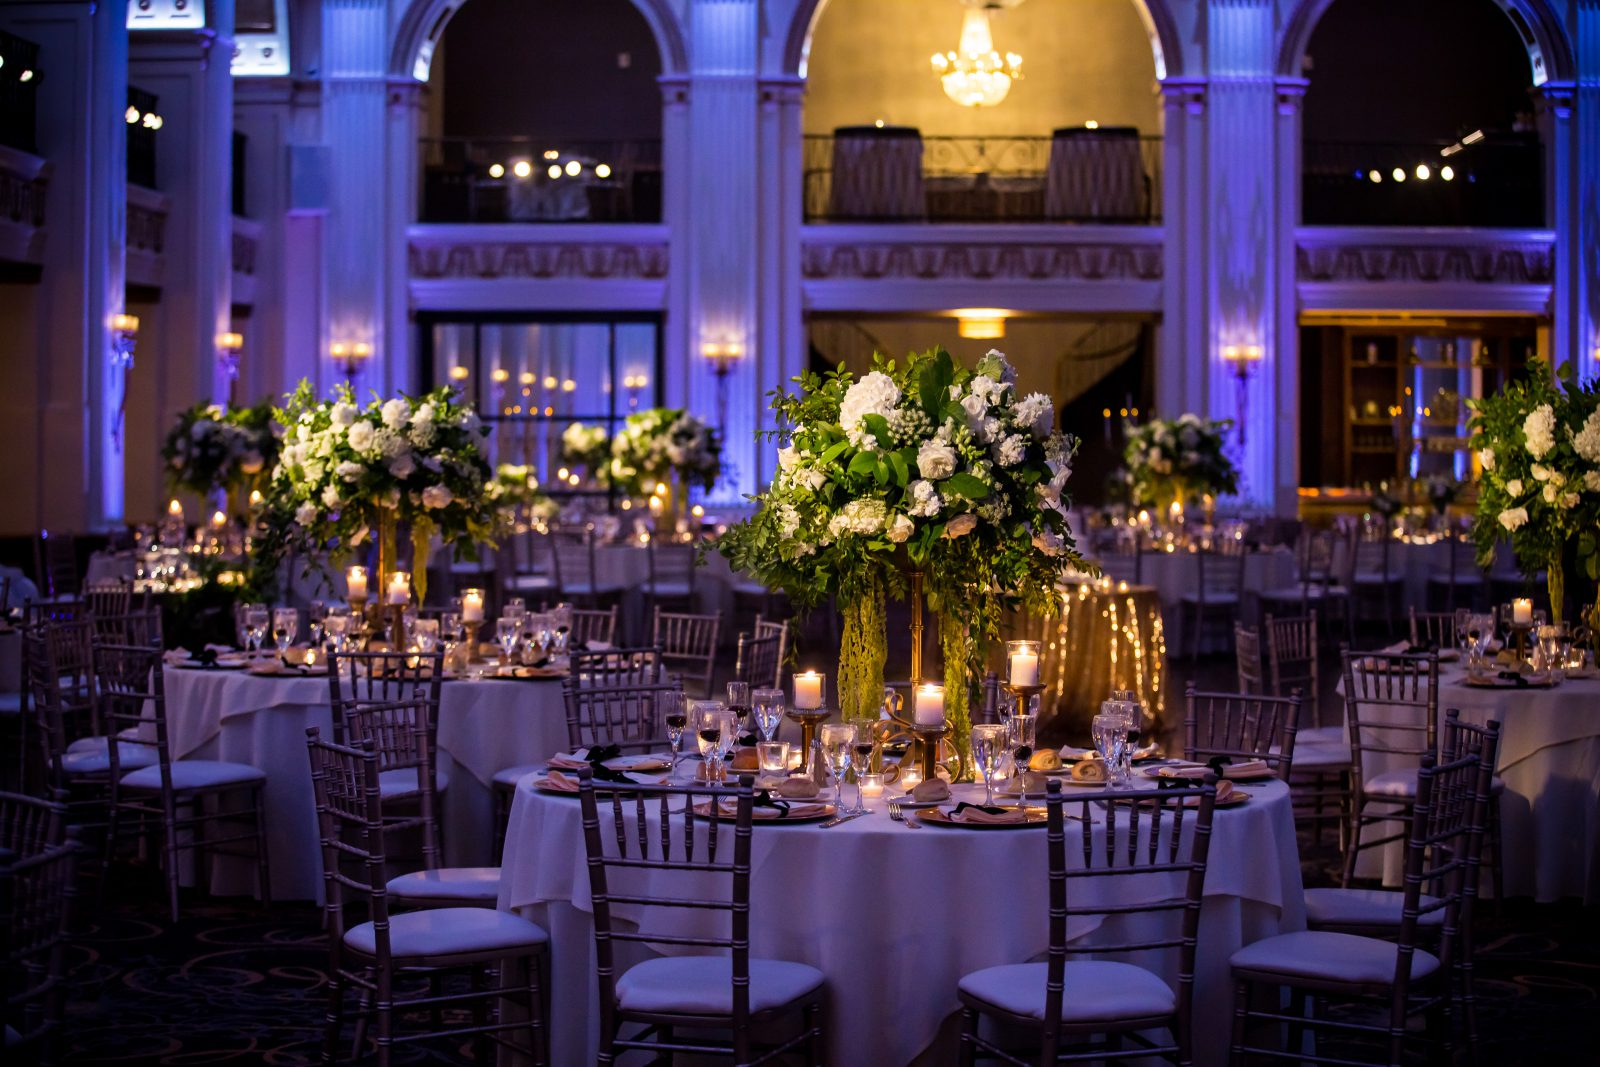 Candlelit round tables with tall white floral centerpieces at Ballroom at the Ben Wedding